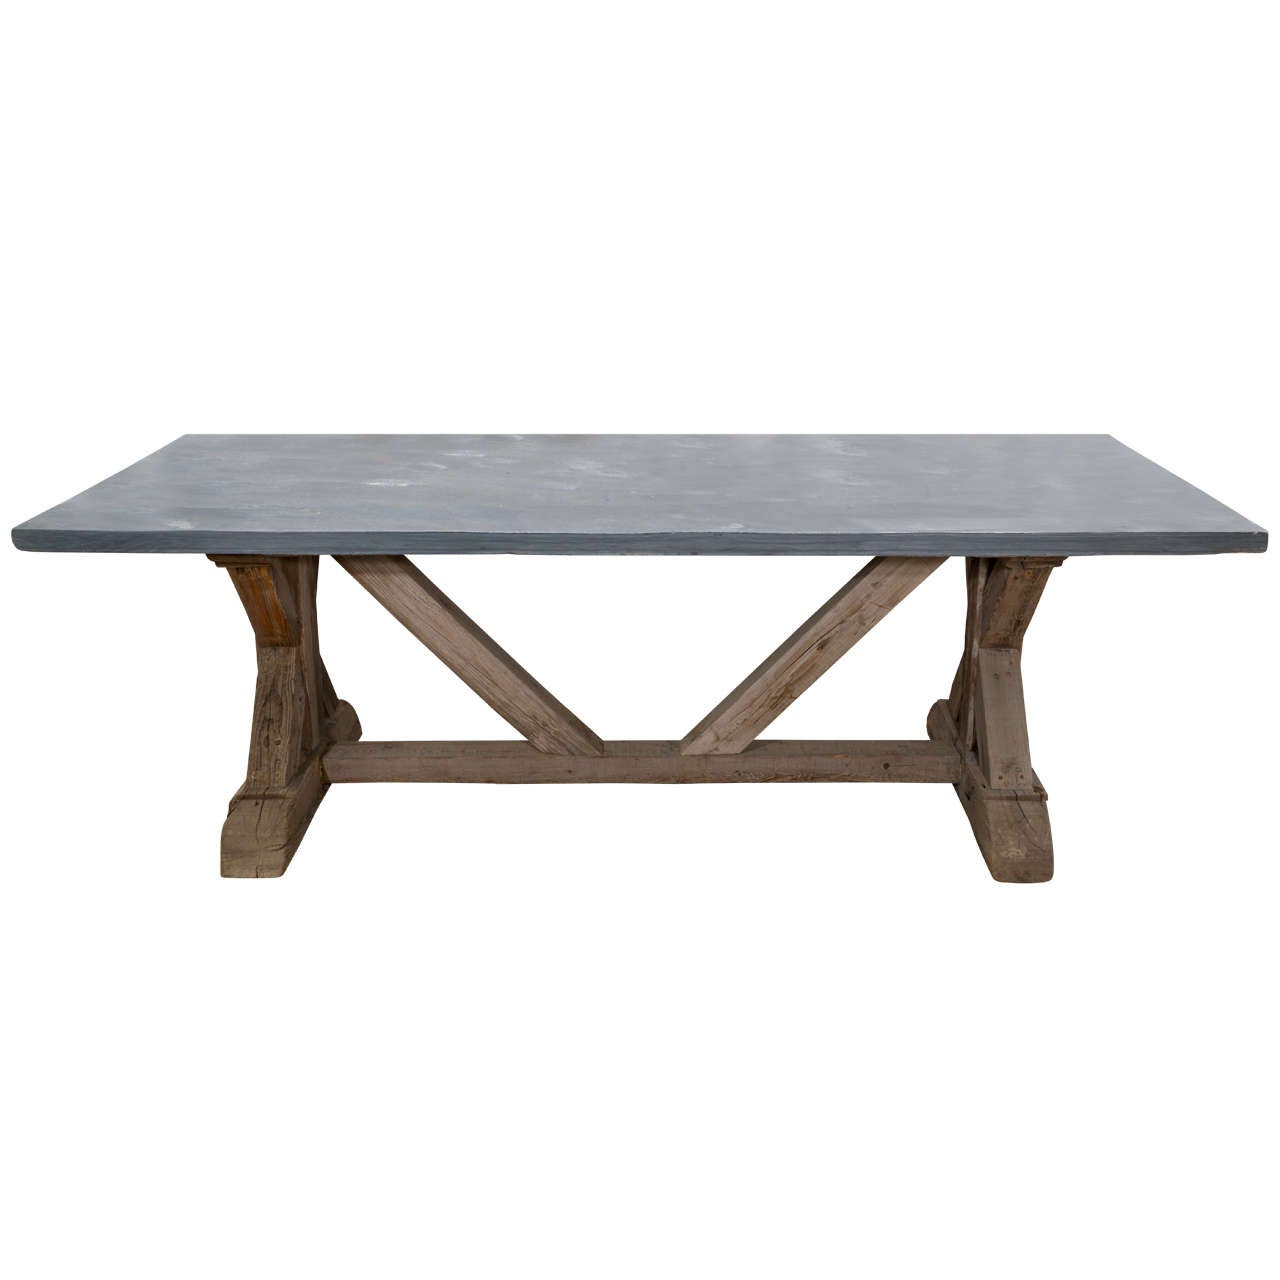 Blue stone top dining table made from reclaimed pine at for Reclaimed dining room table